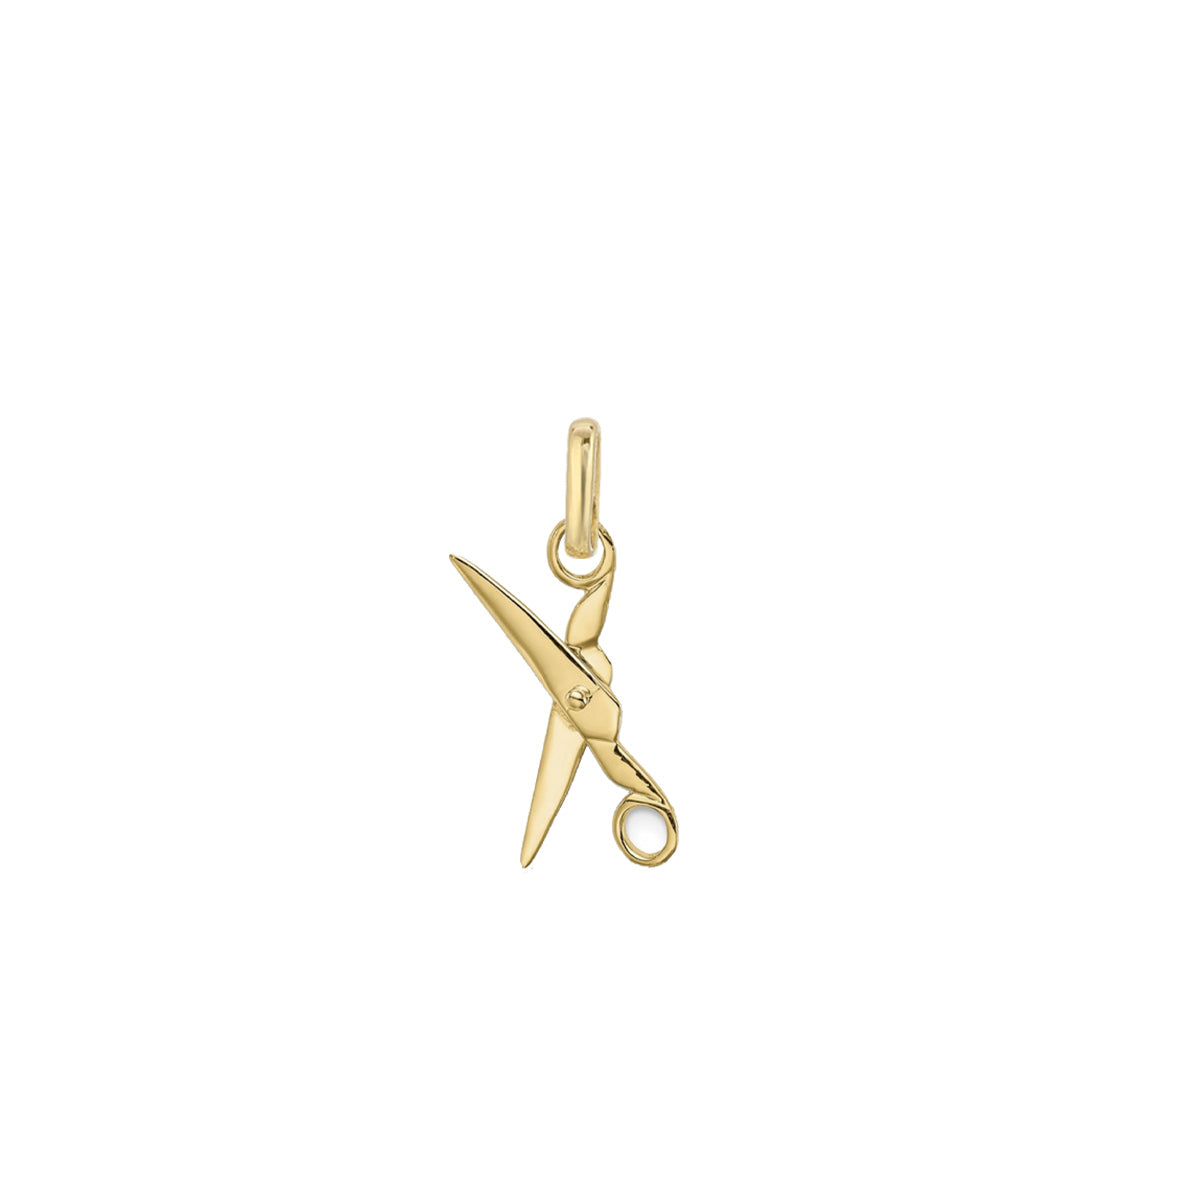 Moveable Scissors Charm - JBJ Charm Collection